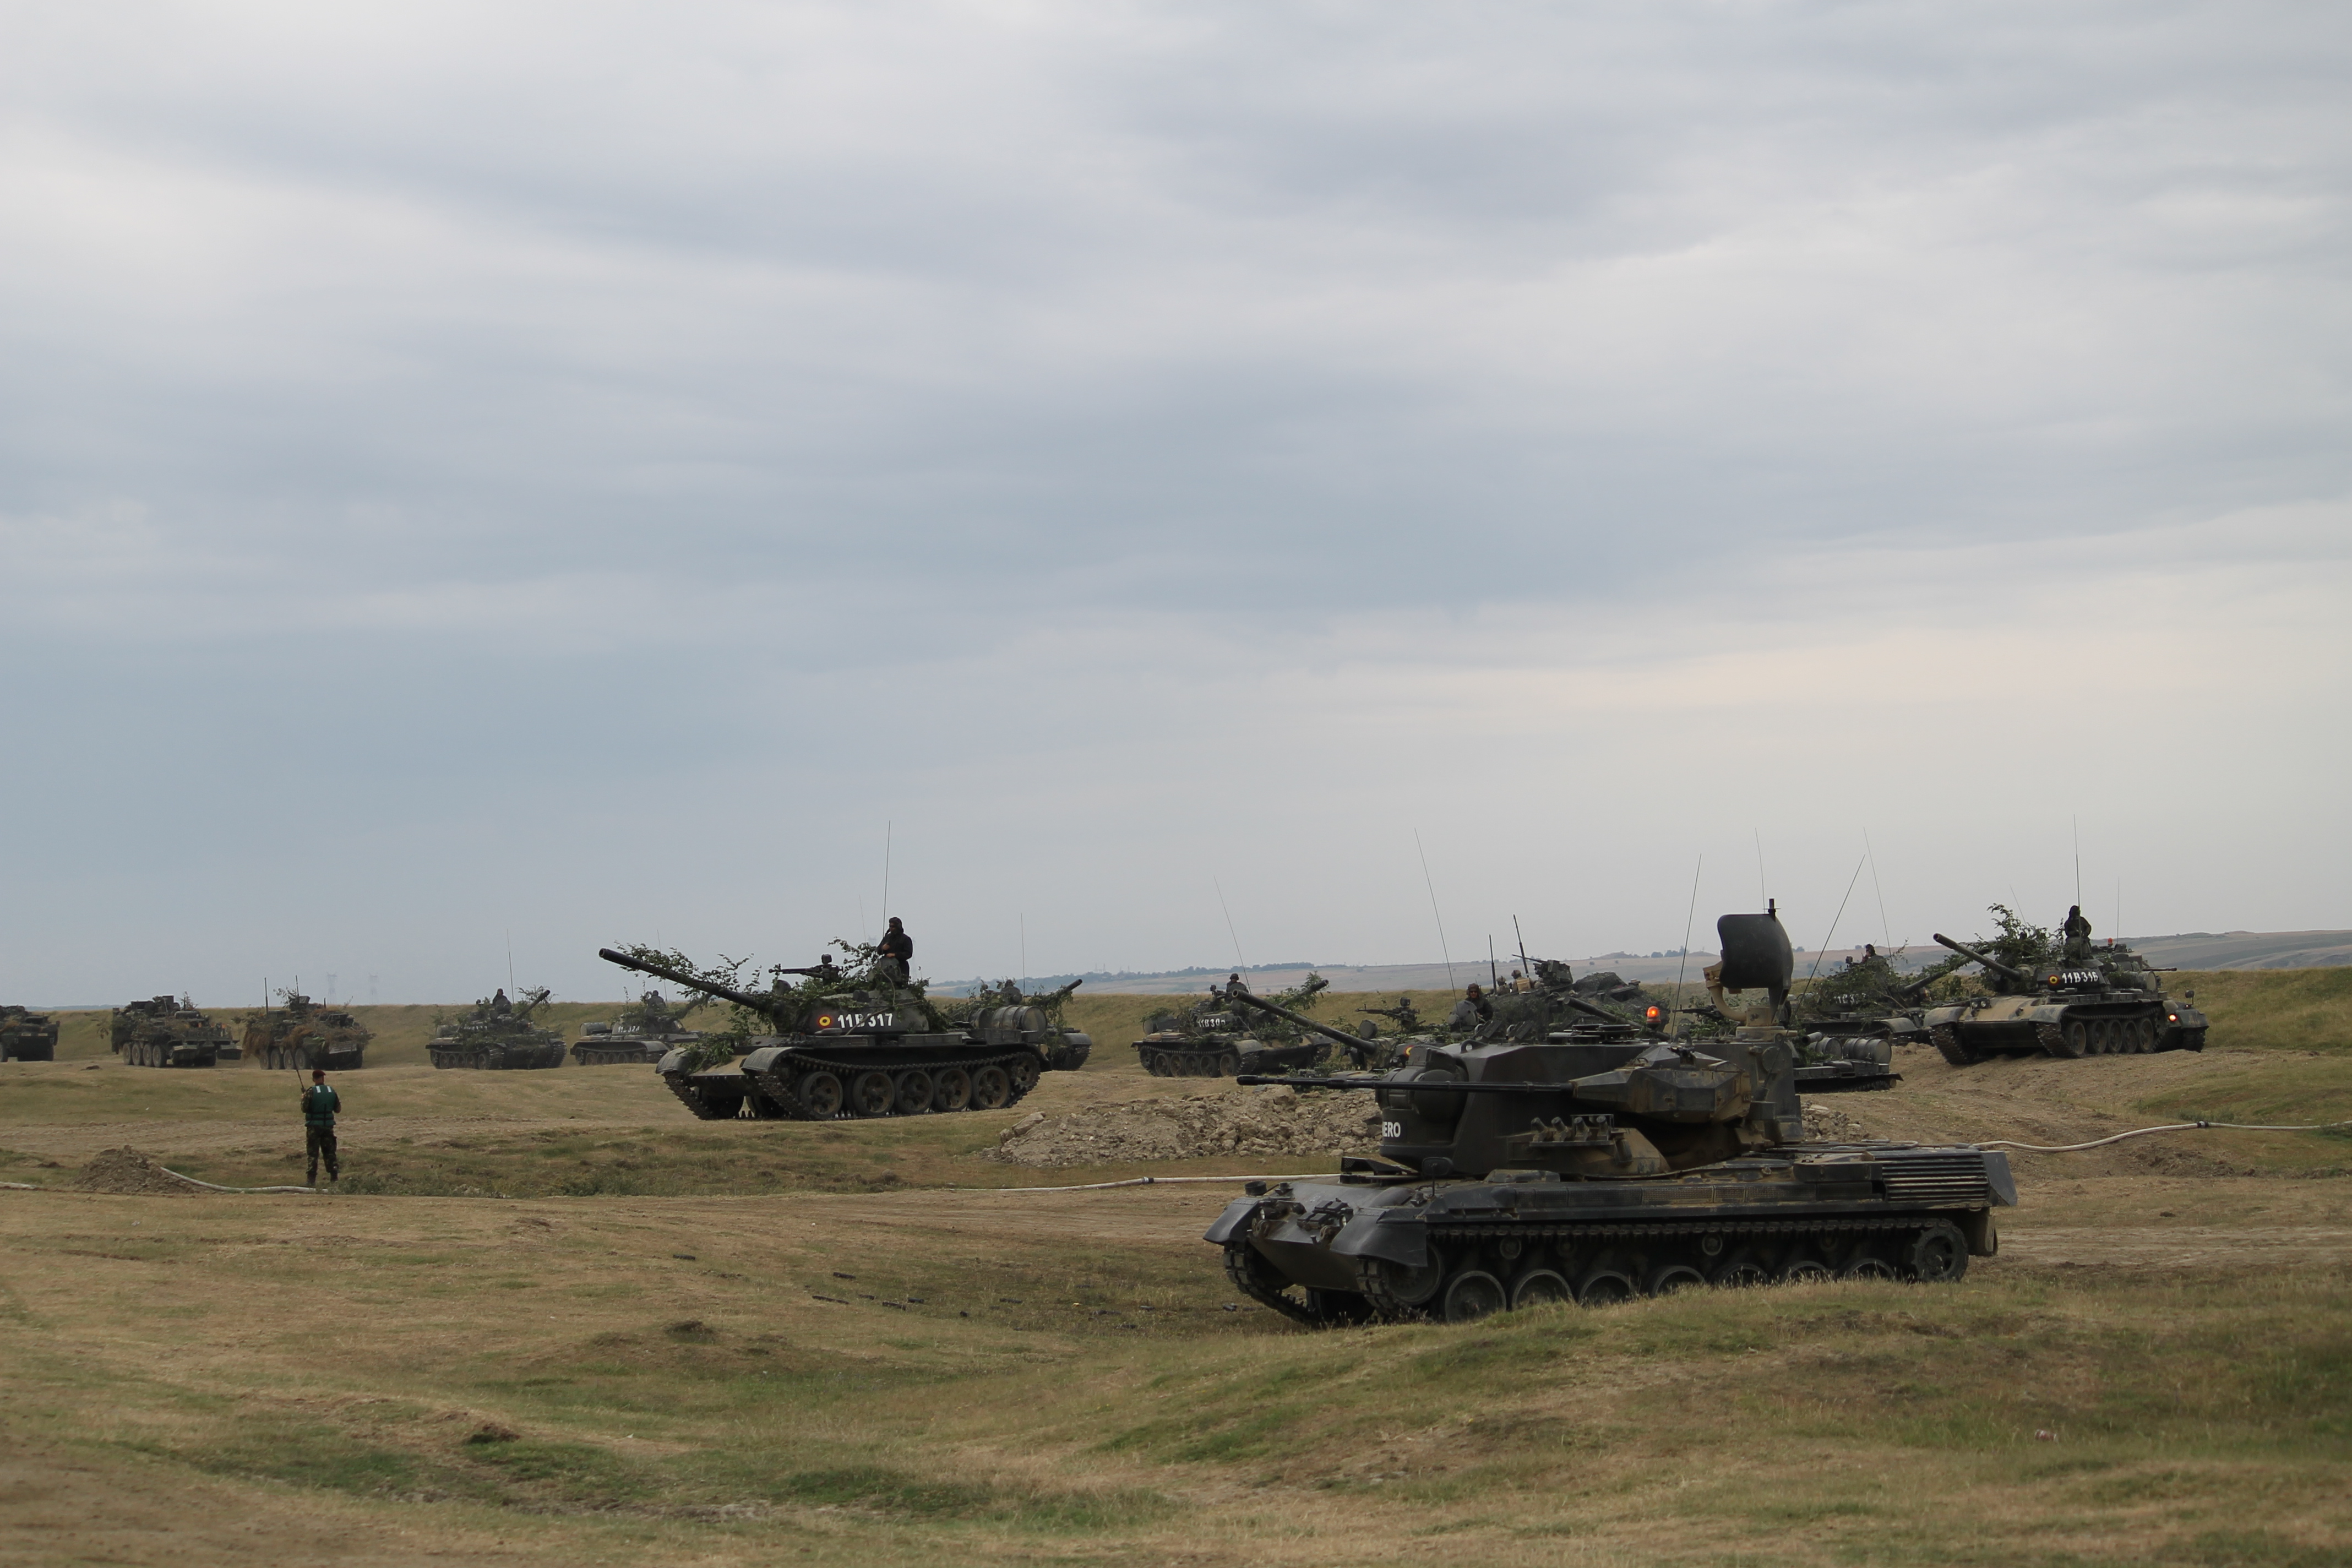 A Gepard in the foreground continues to scan the skies for threats while Romanian tanks and U.S. Strykers begin to line up on the beach in order to cross the bridge. (Jen Judson/Staff)